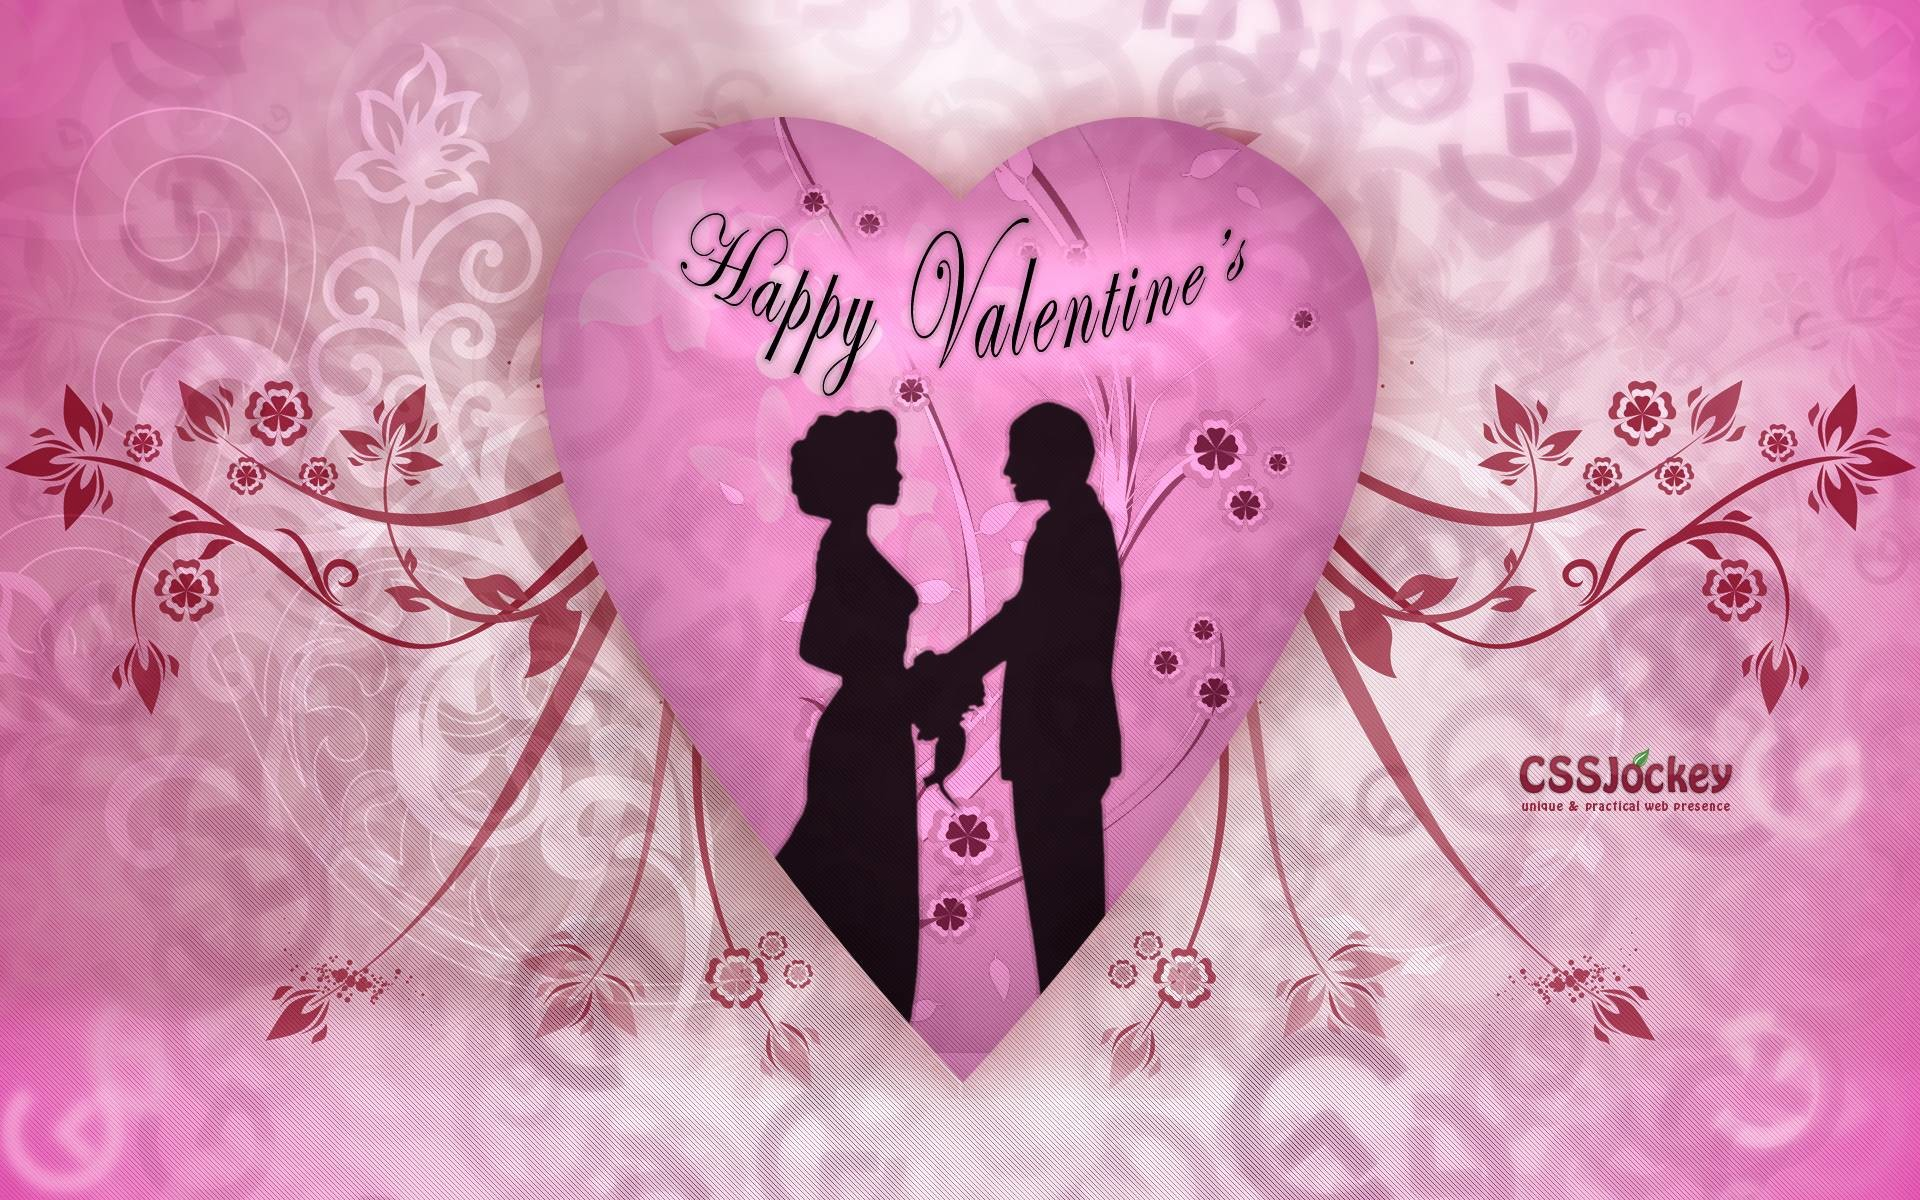 1920x1200 Happy Valentines Day Wallpapers - Full HD wallpaper search